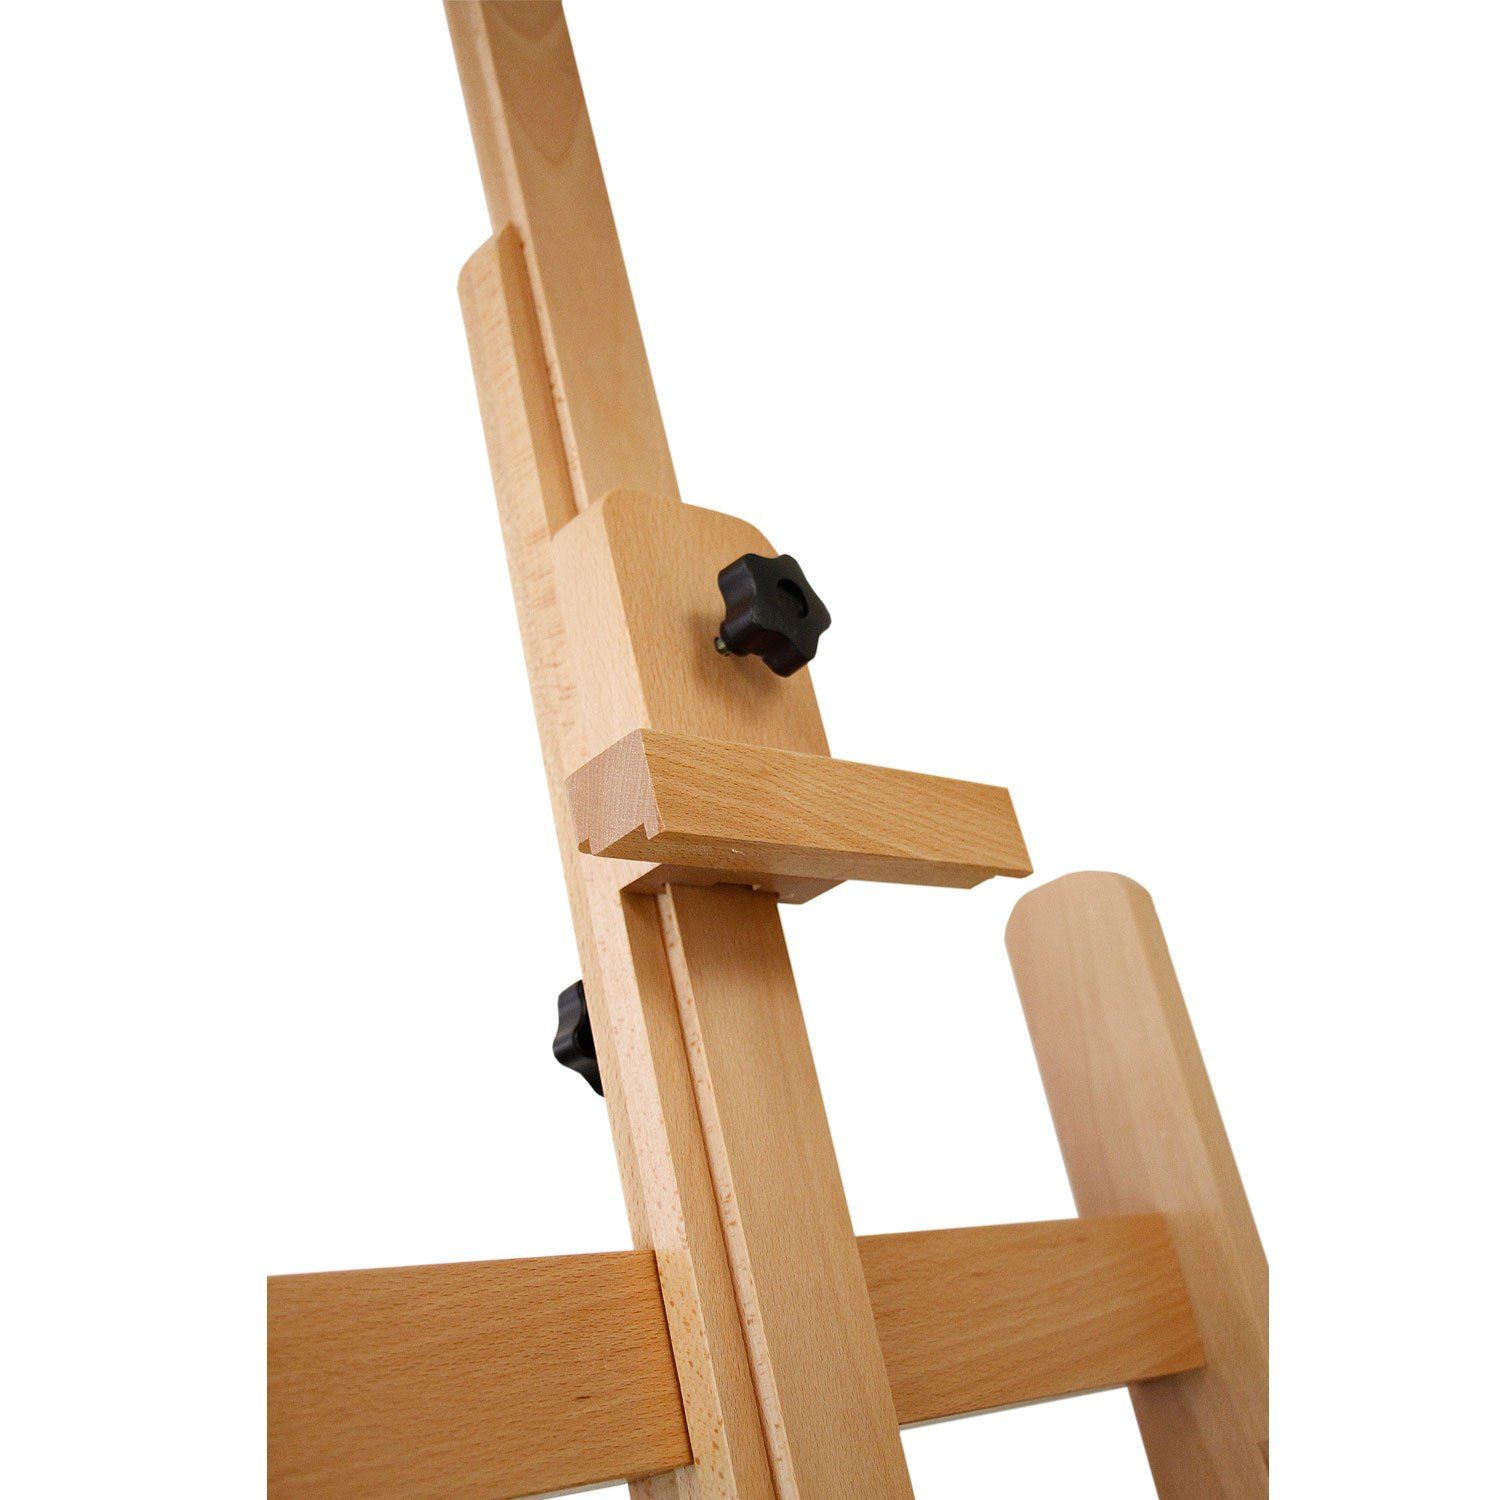 US Art Supply Malibu Extra Large H-Frame Deluxe Adjustable Wood Studio Easel with Tilt and Caster Wheels by US Art Supply (Image #5)